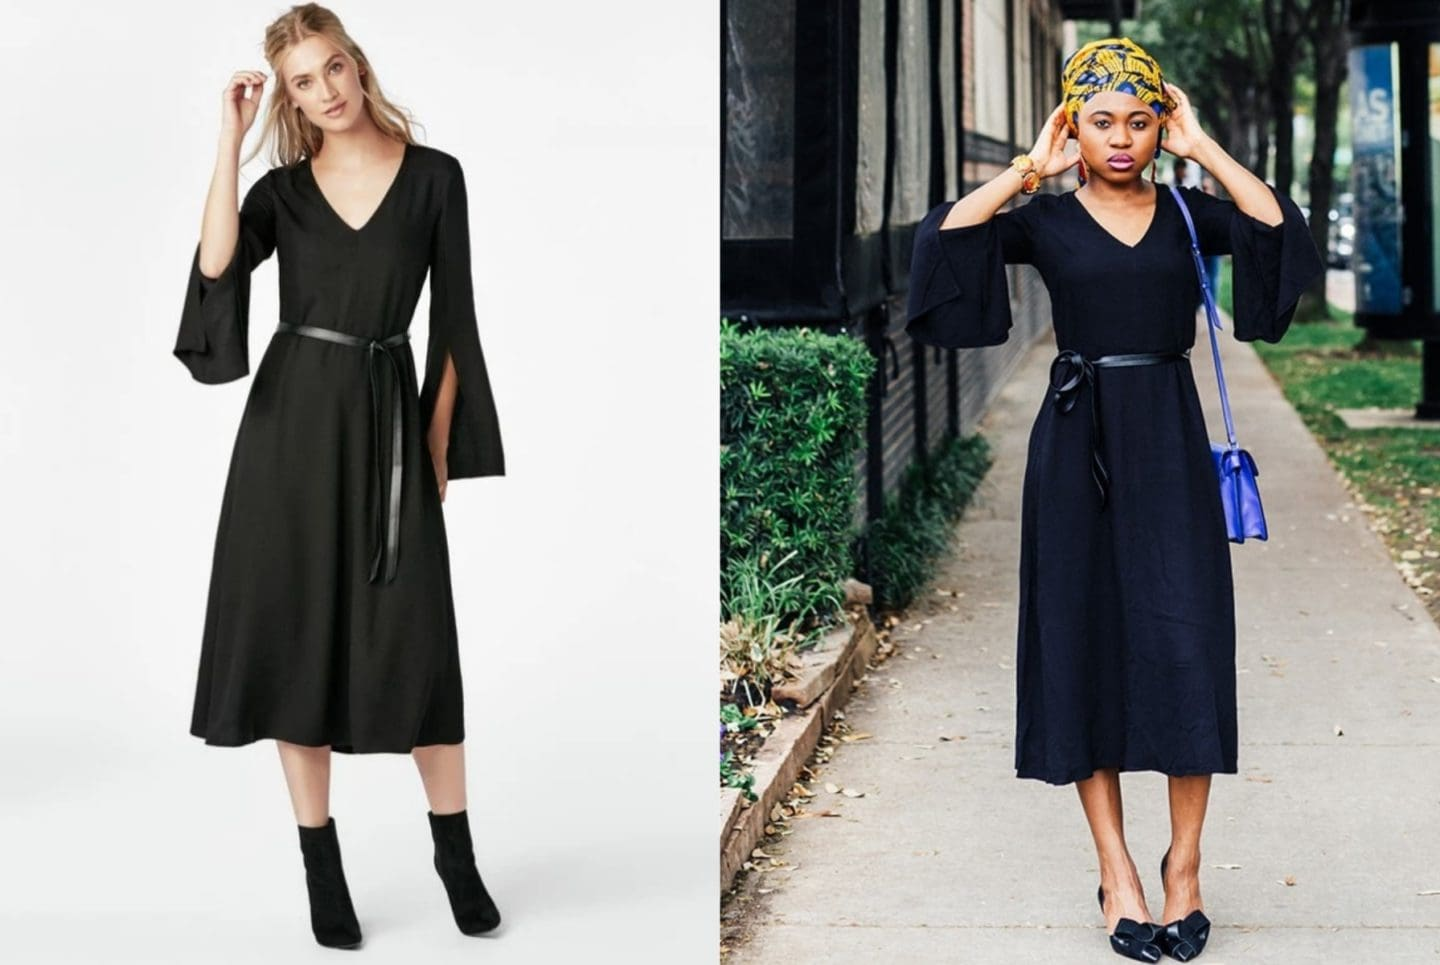 A side by side comparing wearing a JustFab Belted Midi Dress. Is JustFab a scam? Here's my honest review after spending my hard-earned money shopping for dresses and shoes on JustFab.